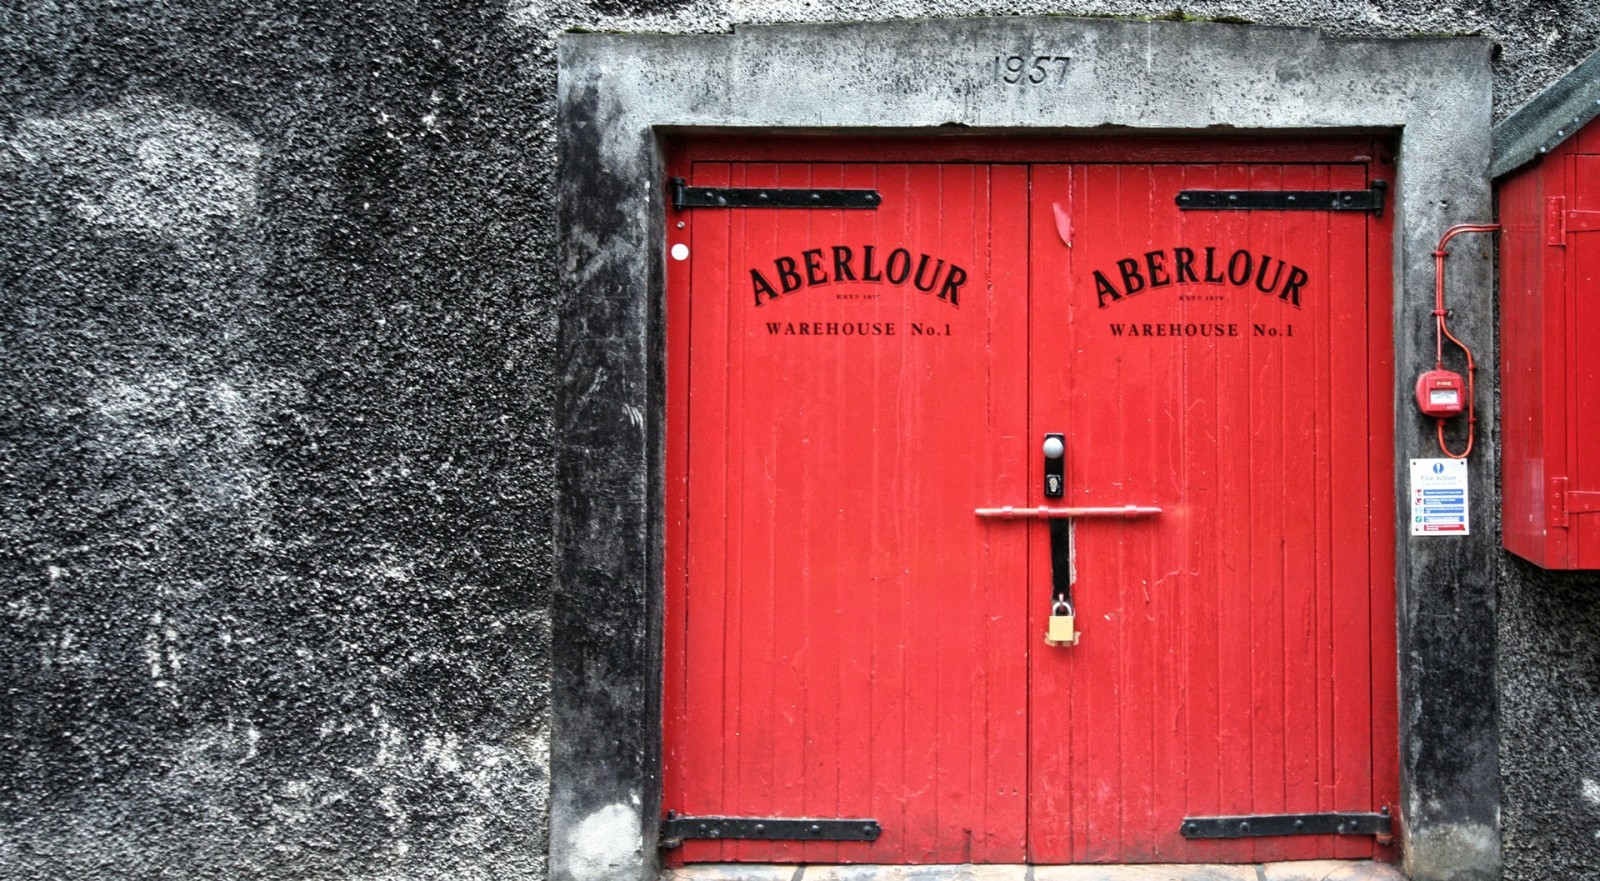 Aberlour Warehouse No. 1